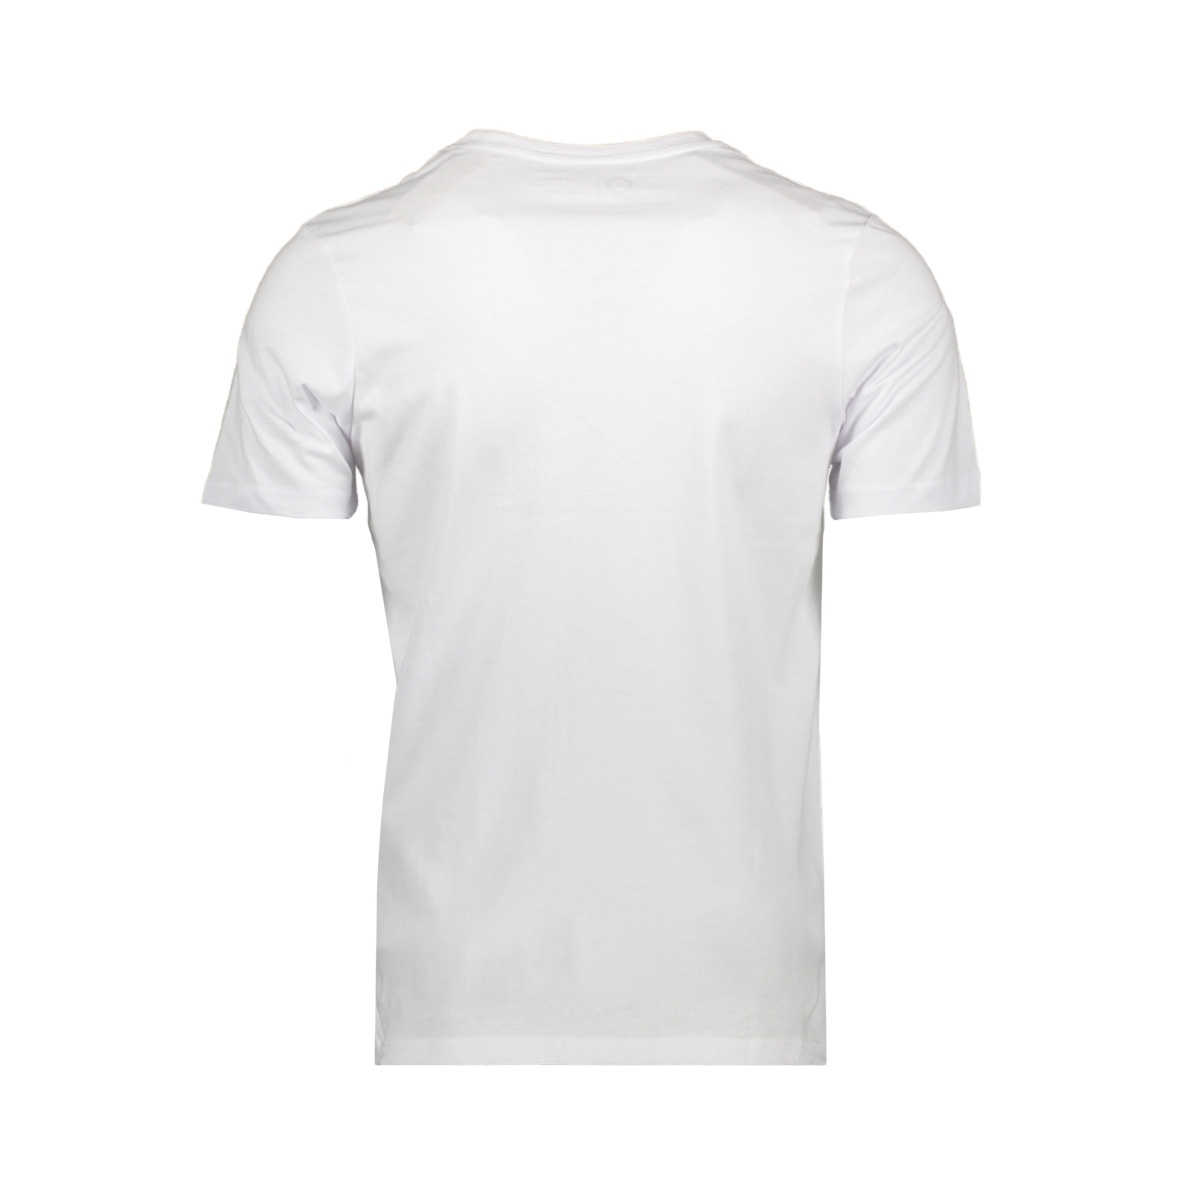 jcobooster tee ss crew neck june 19 12155989 jack & jones t-shirt white